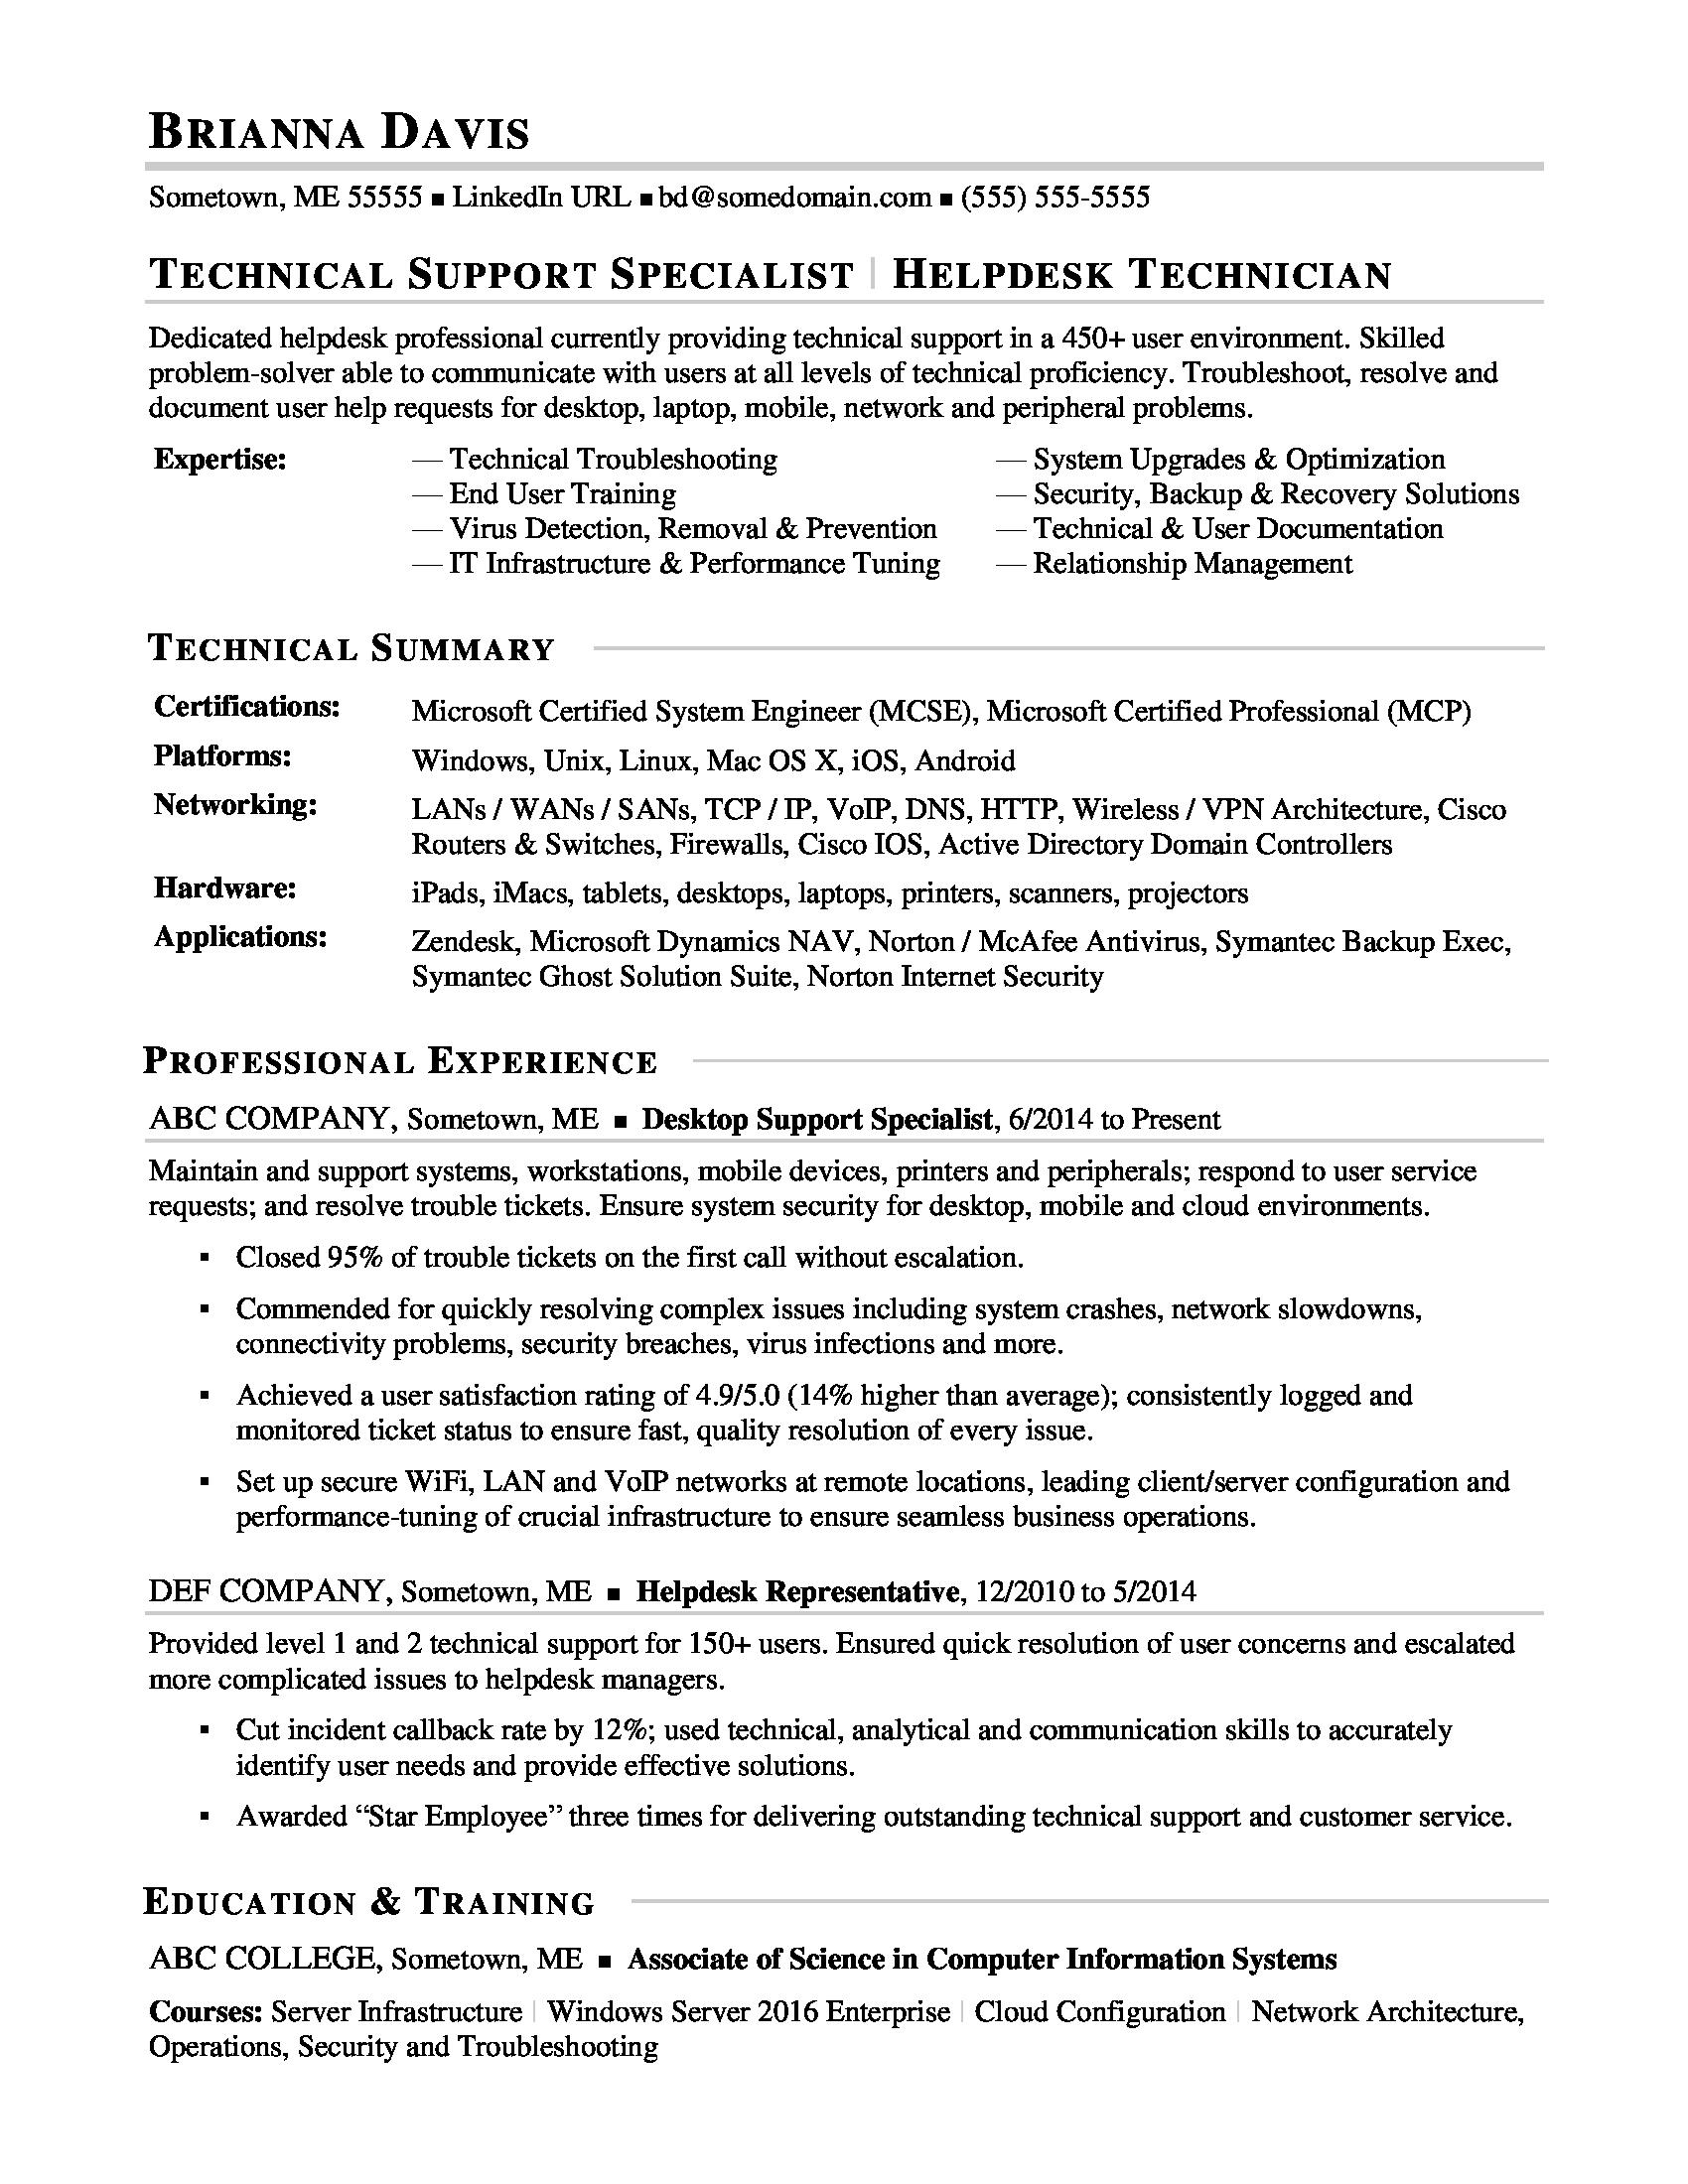 i need help writing a resumes